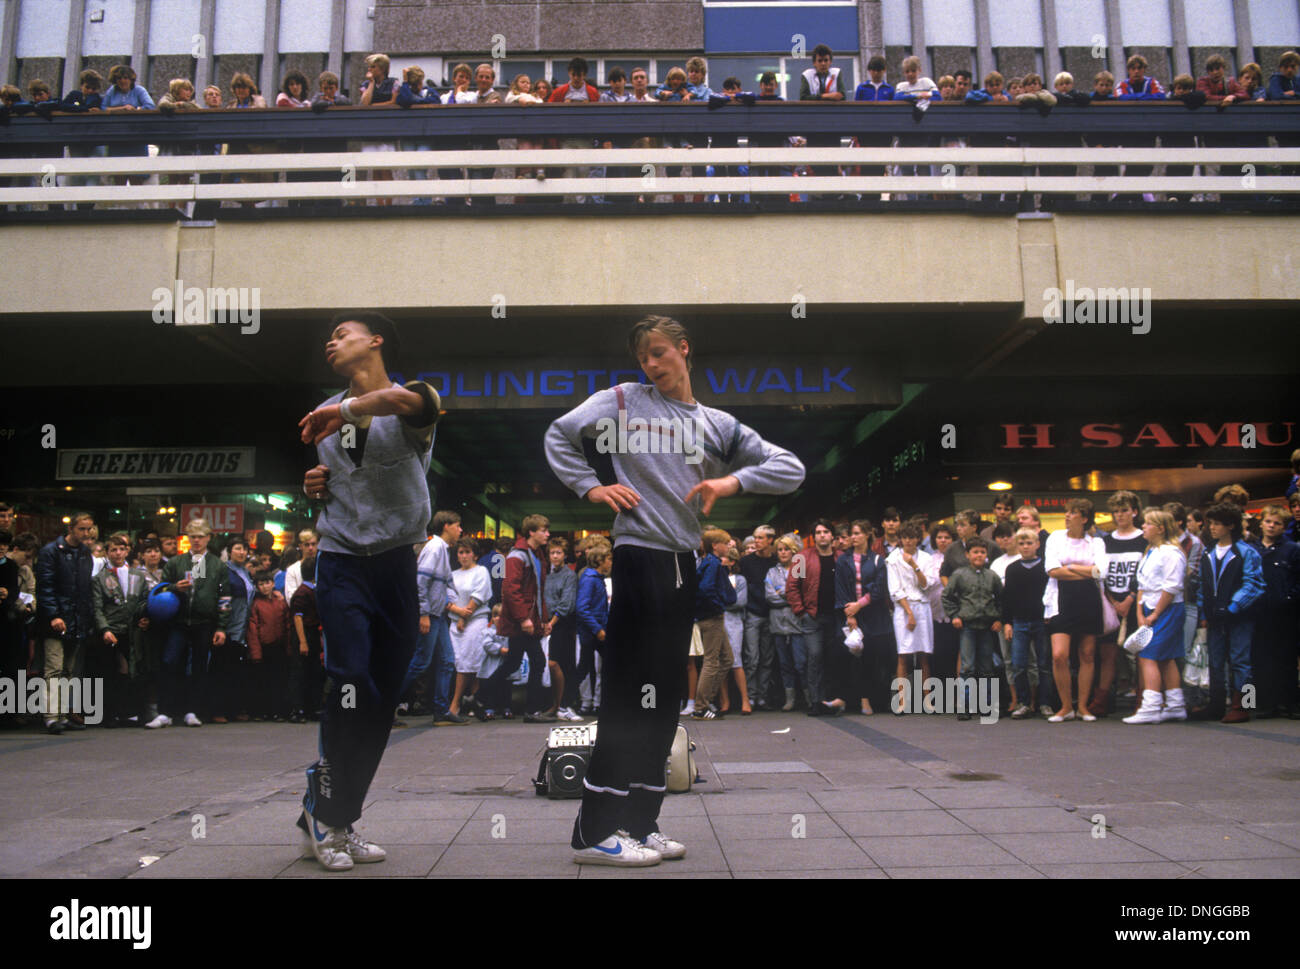 Break Dancing Stockport Lancashire. 1980 Inglaterra Gran Bretaña HOMER SYKES Imagen De Stock